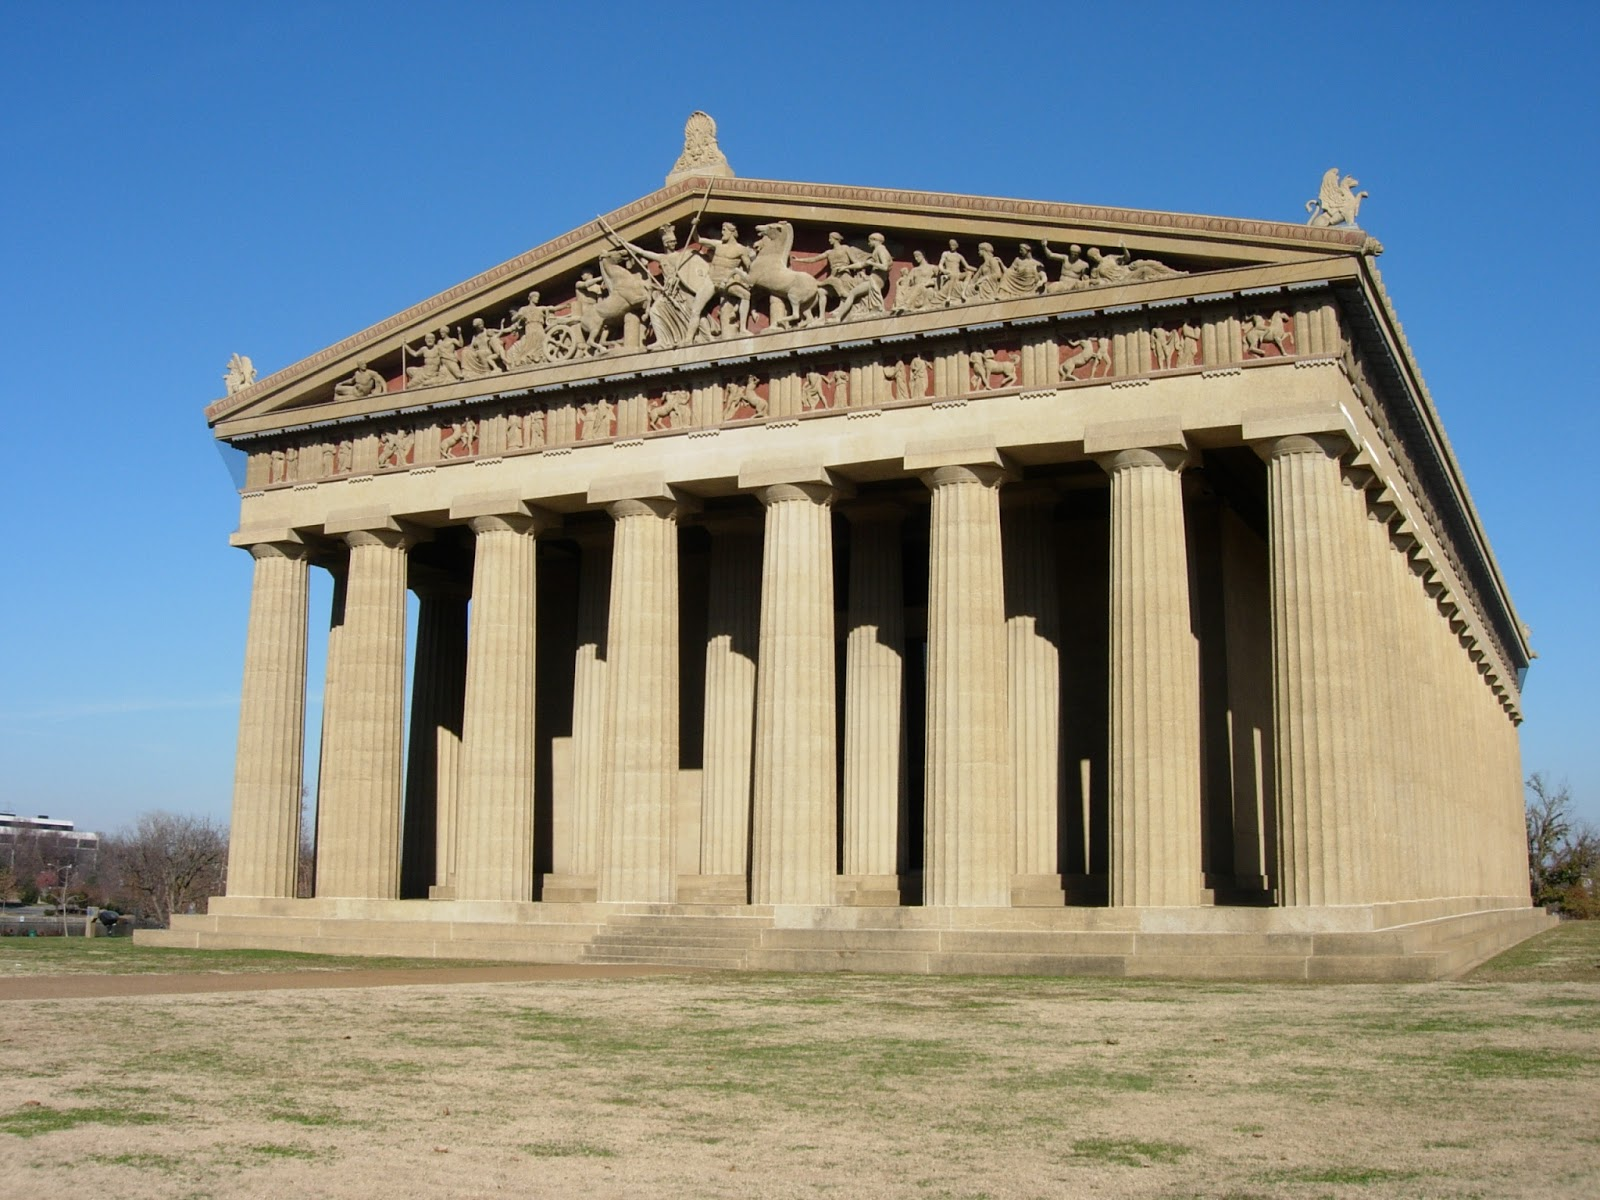 Karens English Class: Nashville Parthenon!